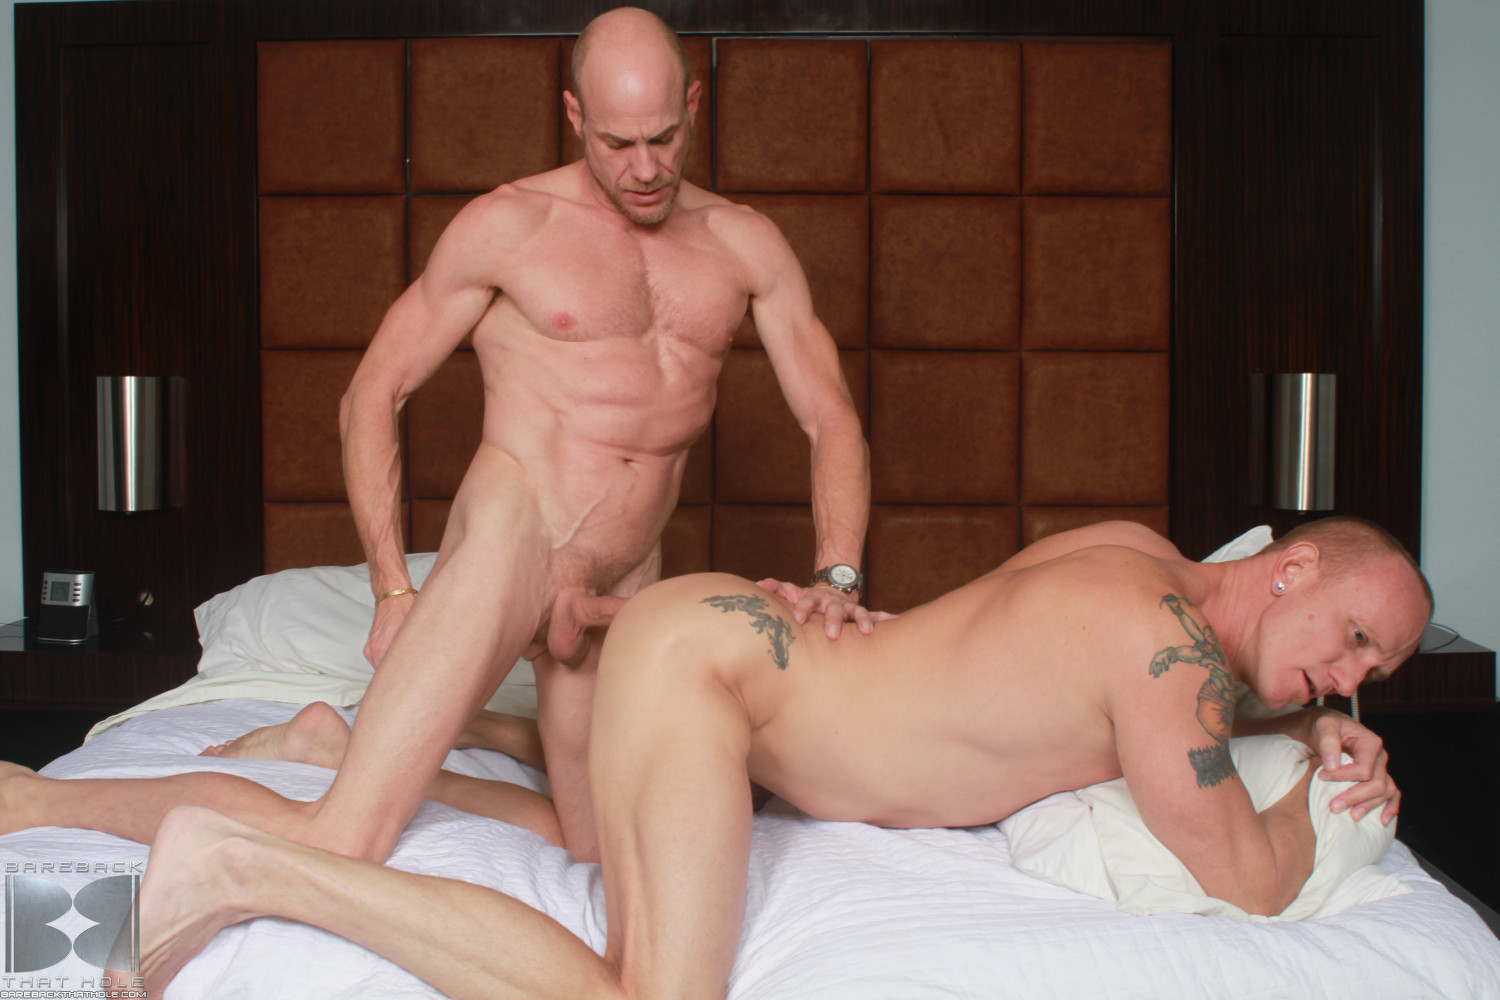 Bareback-That-Hole-Parker-and-Mason-Garet-Muscle-Daddy-Barebacking-06 Amateur Muscle Daddy Fucks His Buddy Bareback With His Big Cock